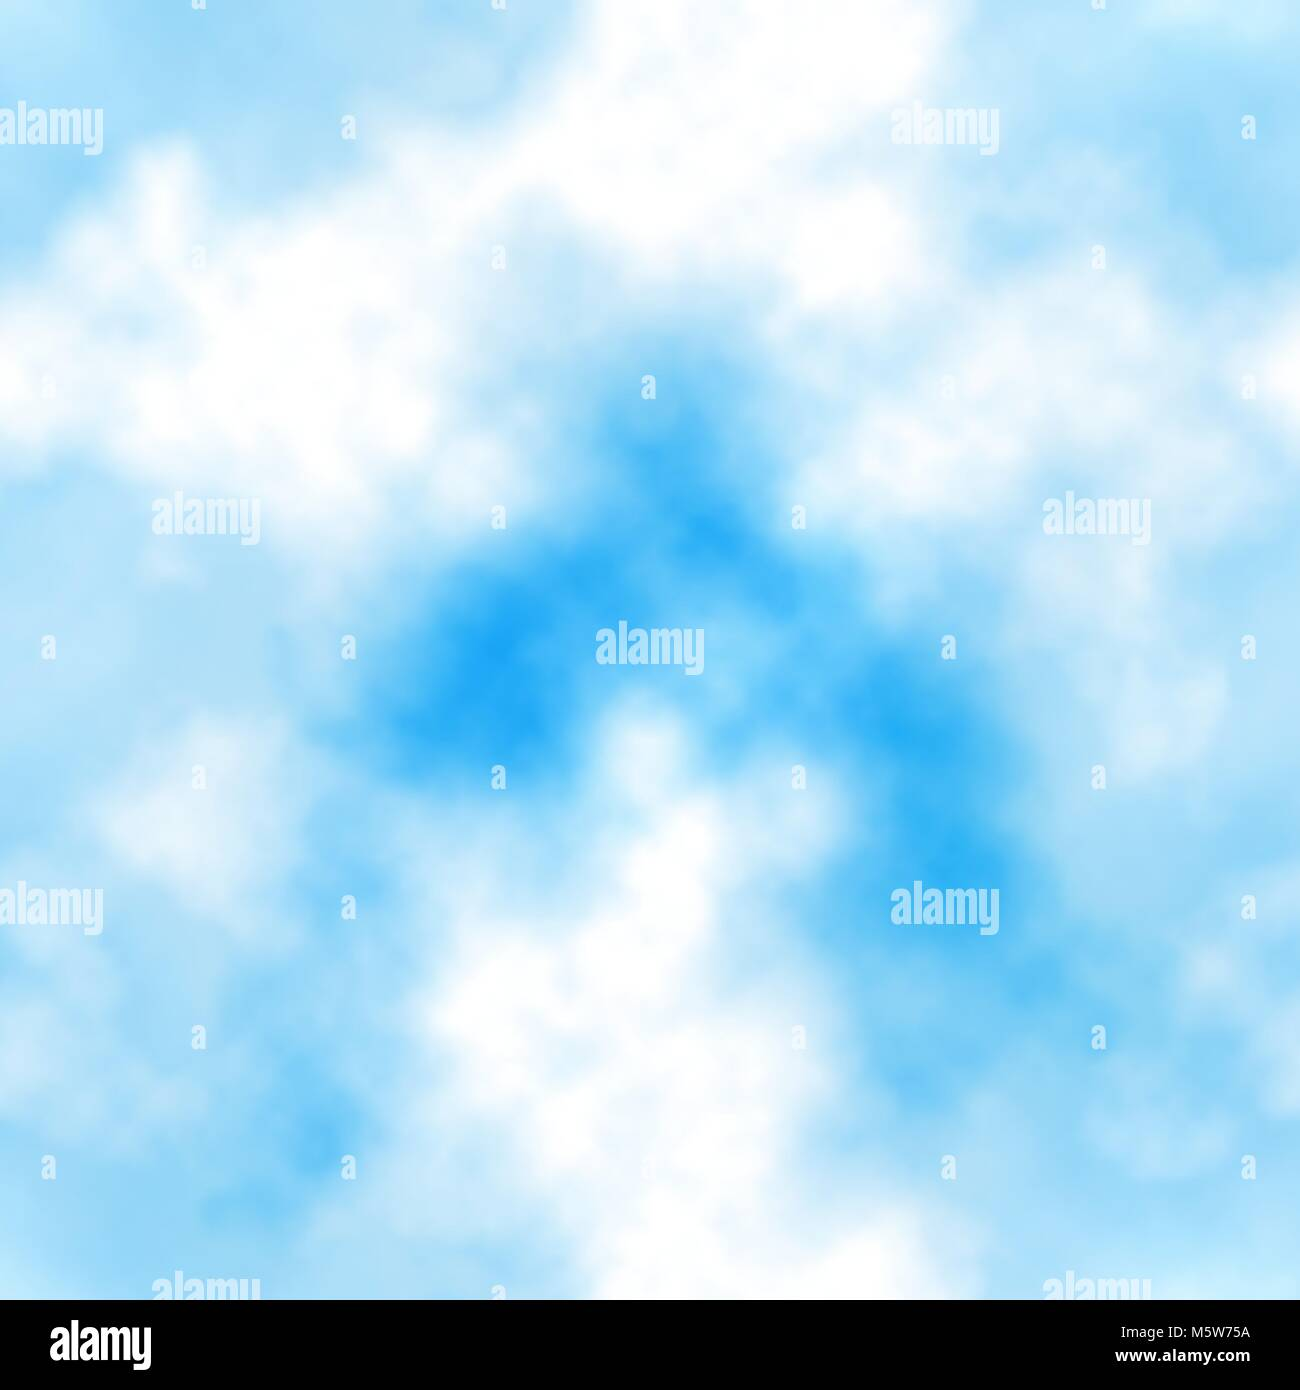 Seamless vector tile of white clouds in a blue sky made using a gradient mesh - Stock Image